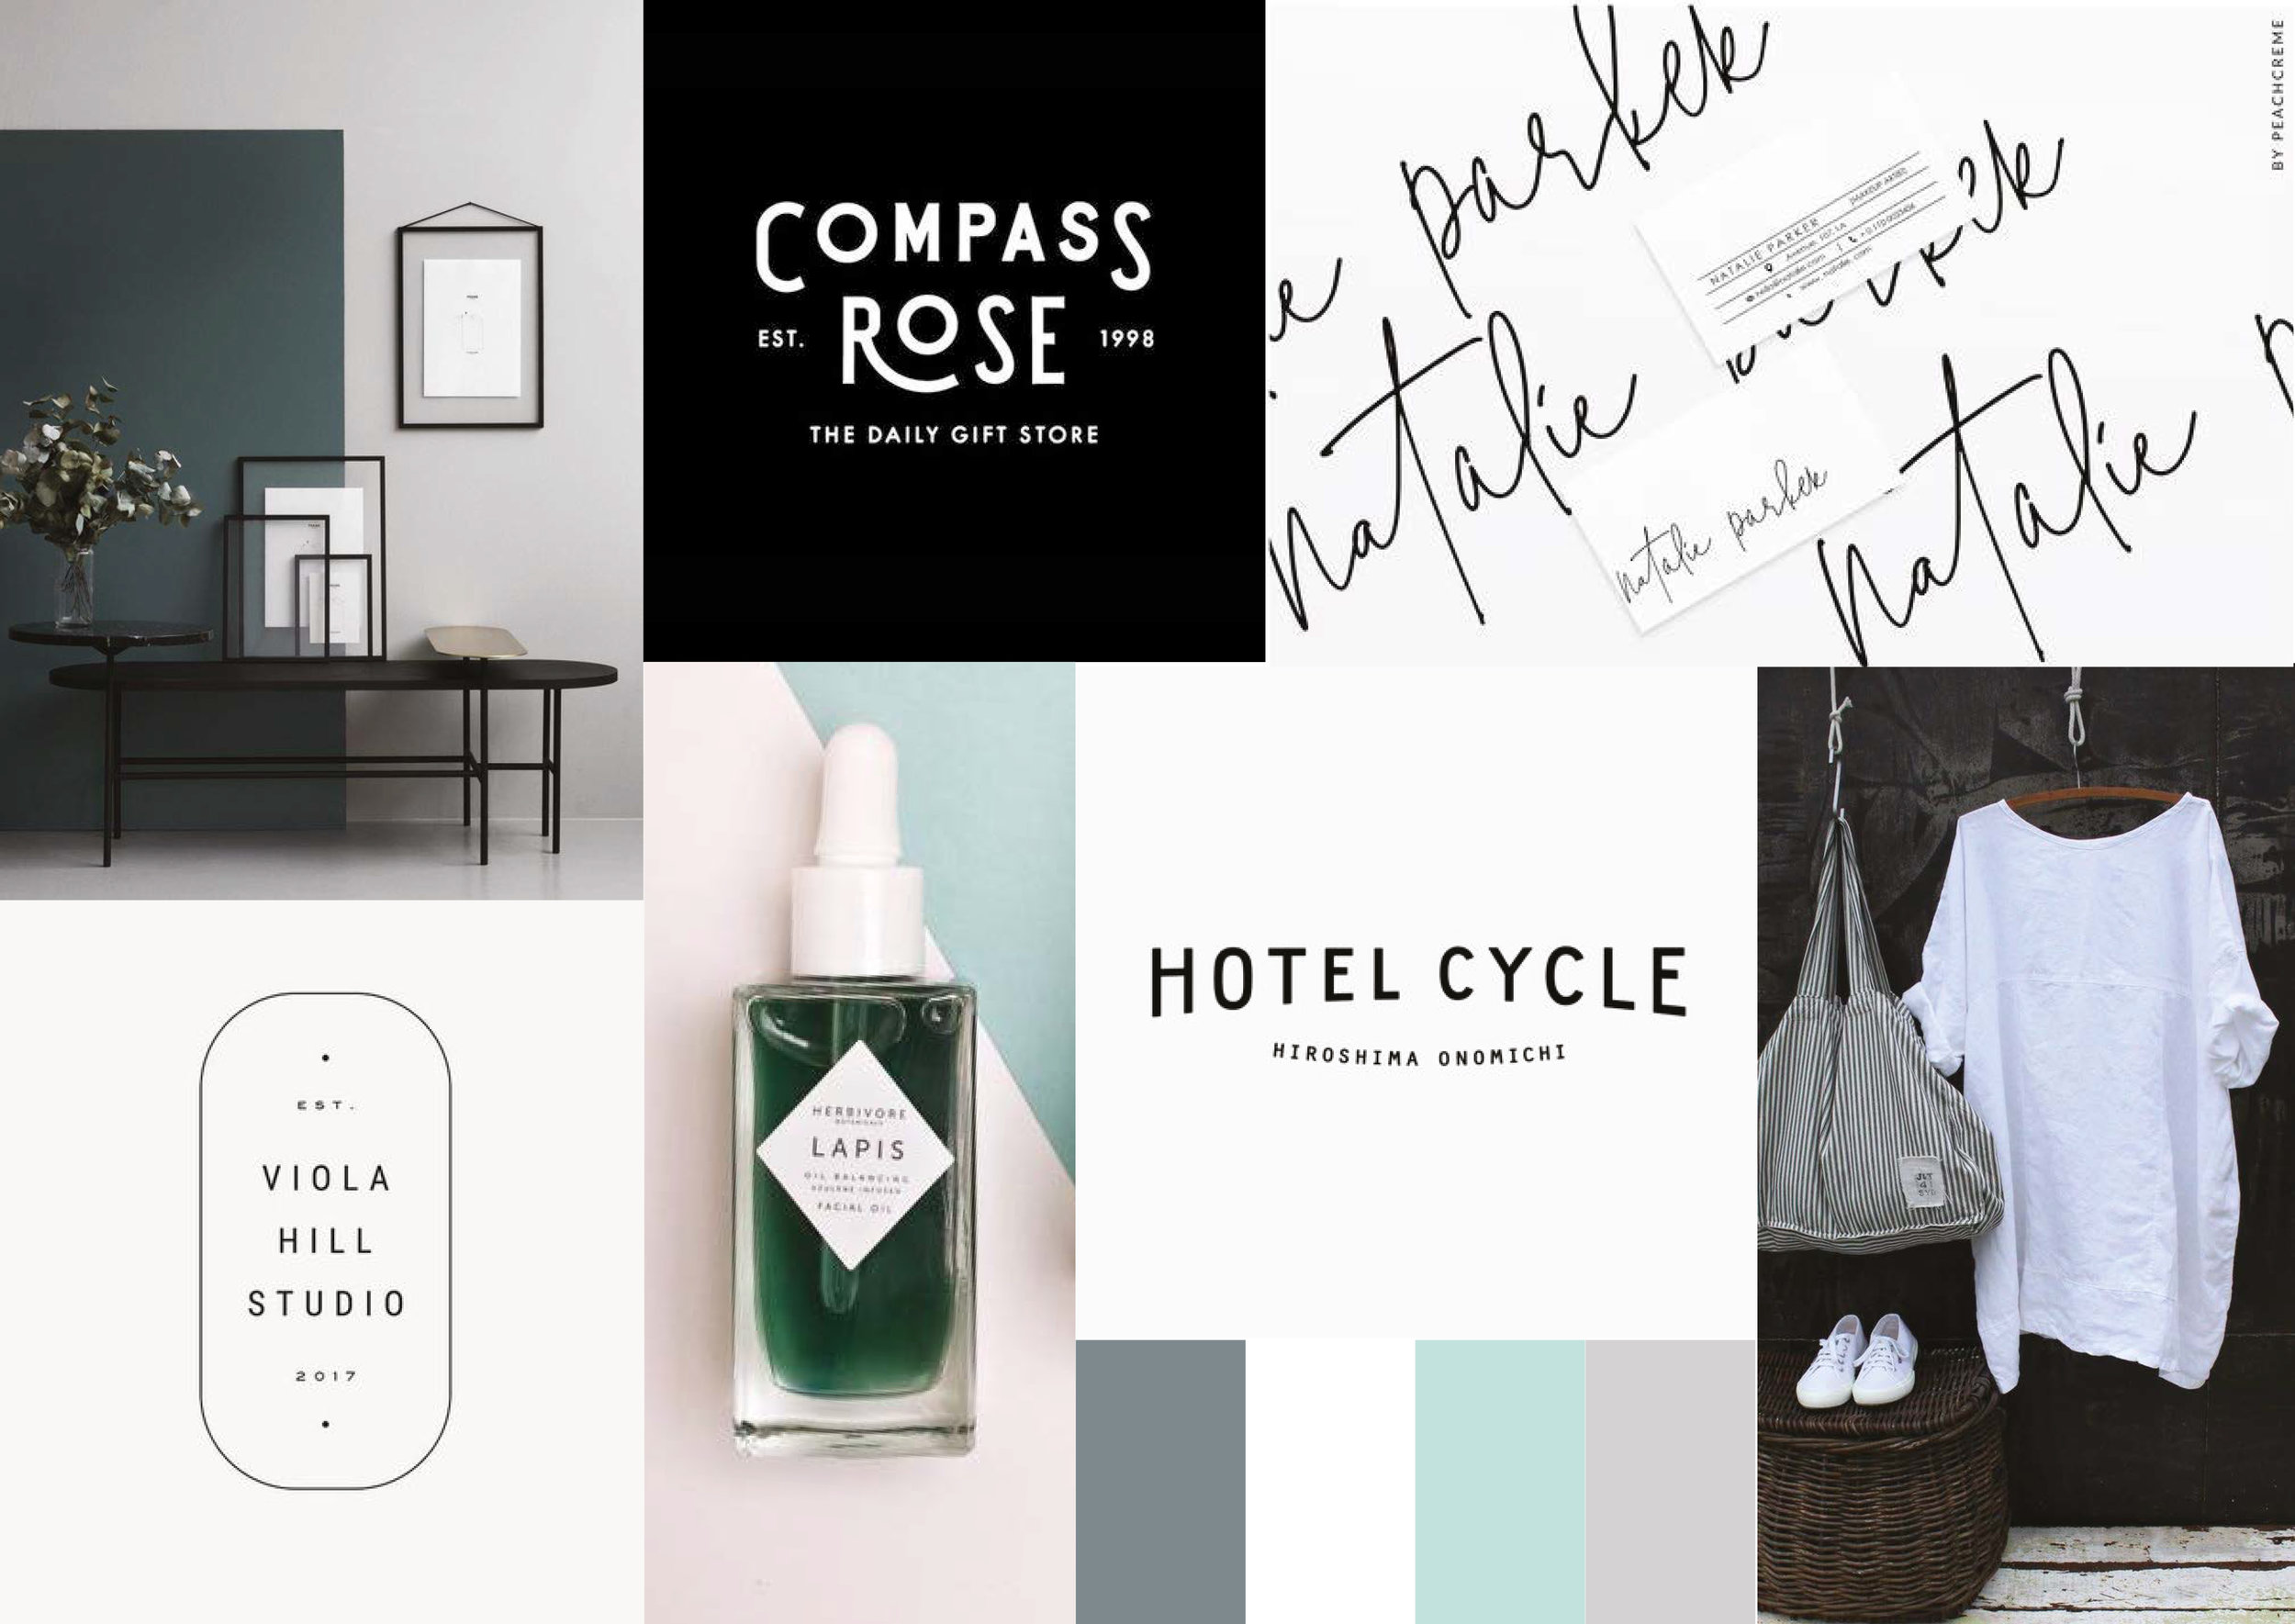 hampers-vp-moodboard-1.jpg